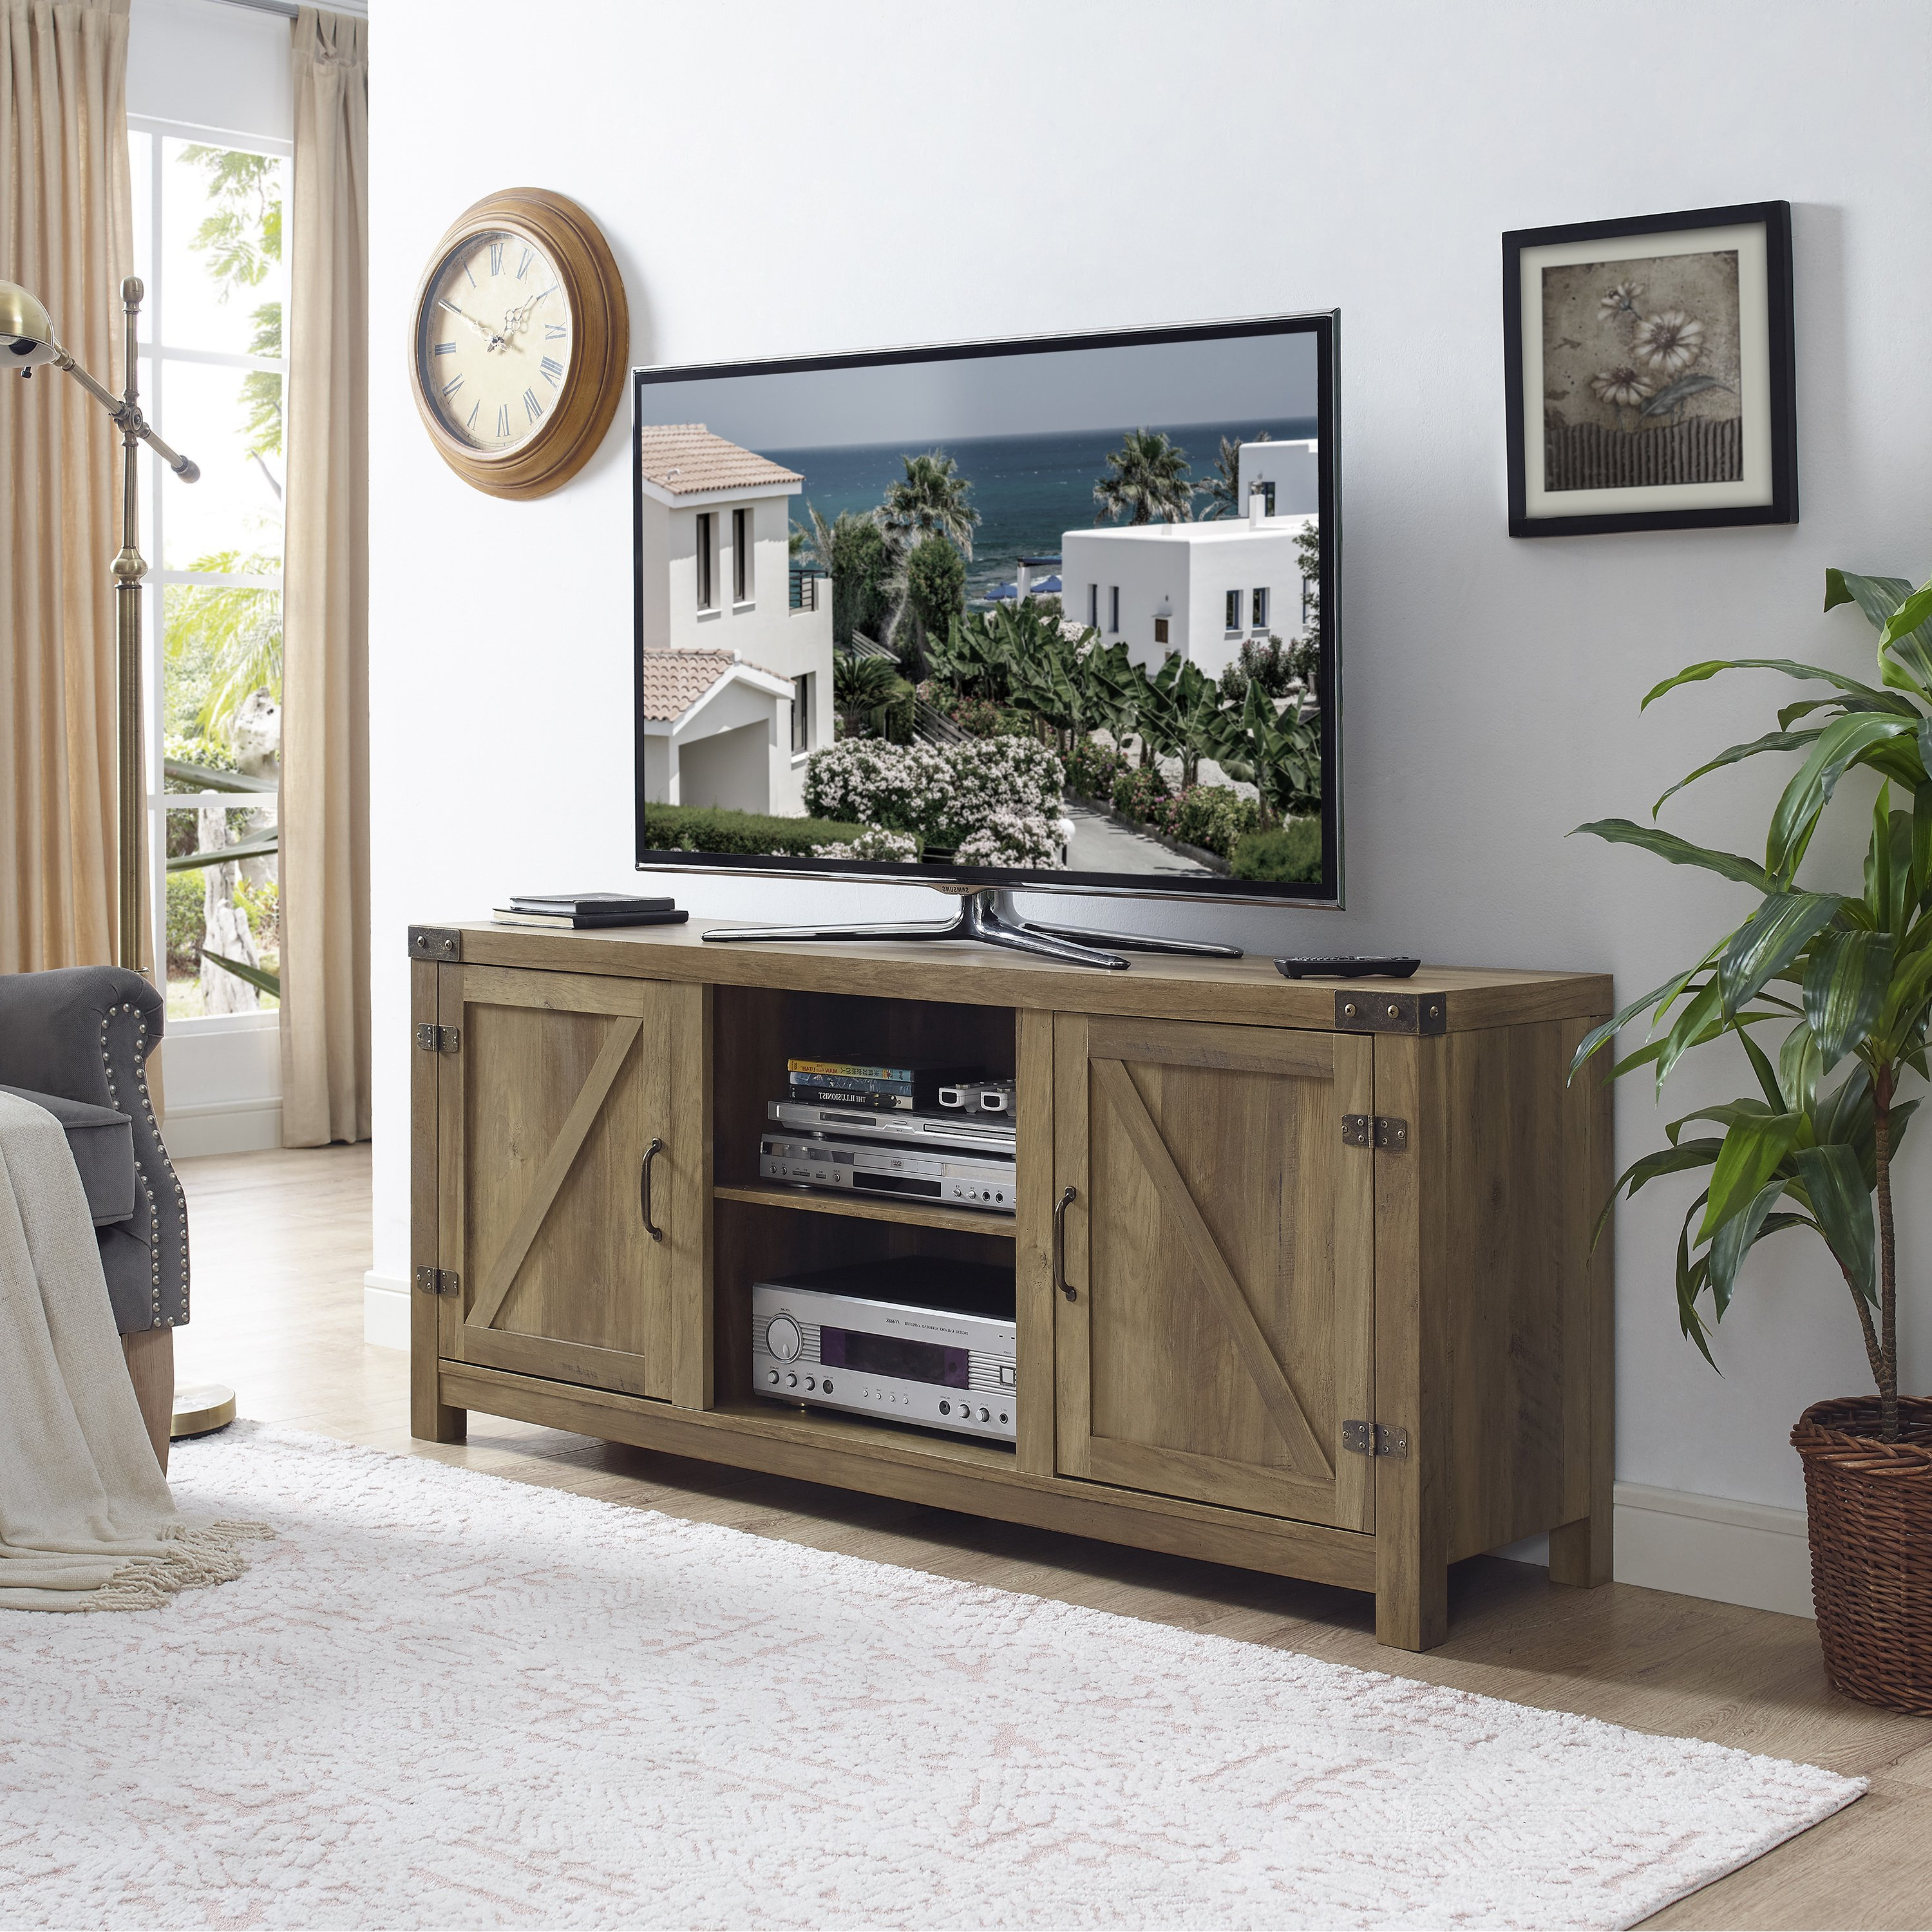 3 Tv Stands & Entertainment Centers For Less | Overstock In Rowan 45 Inch Tv Stands (View 13 of 20)